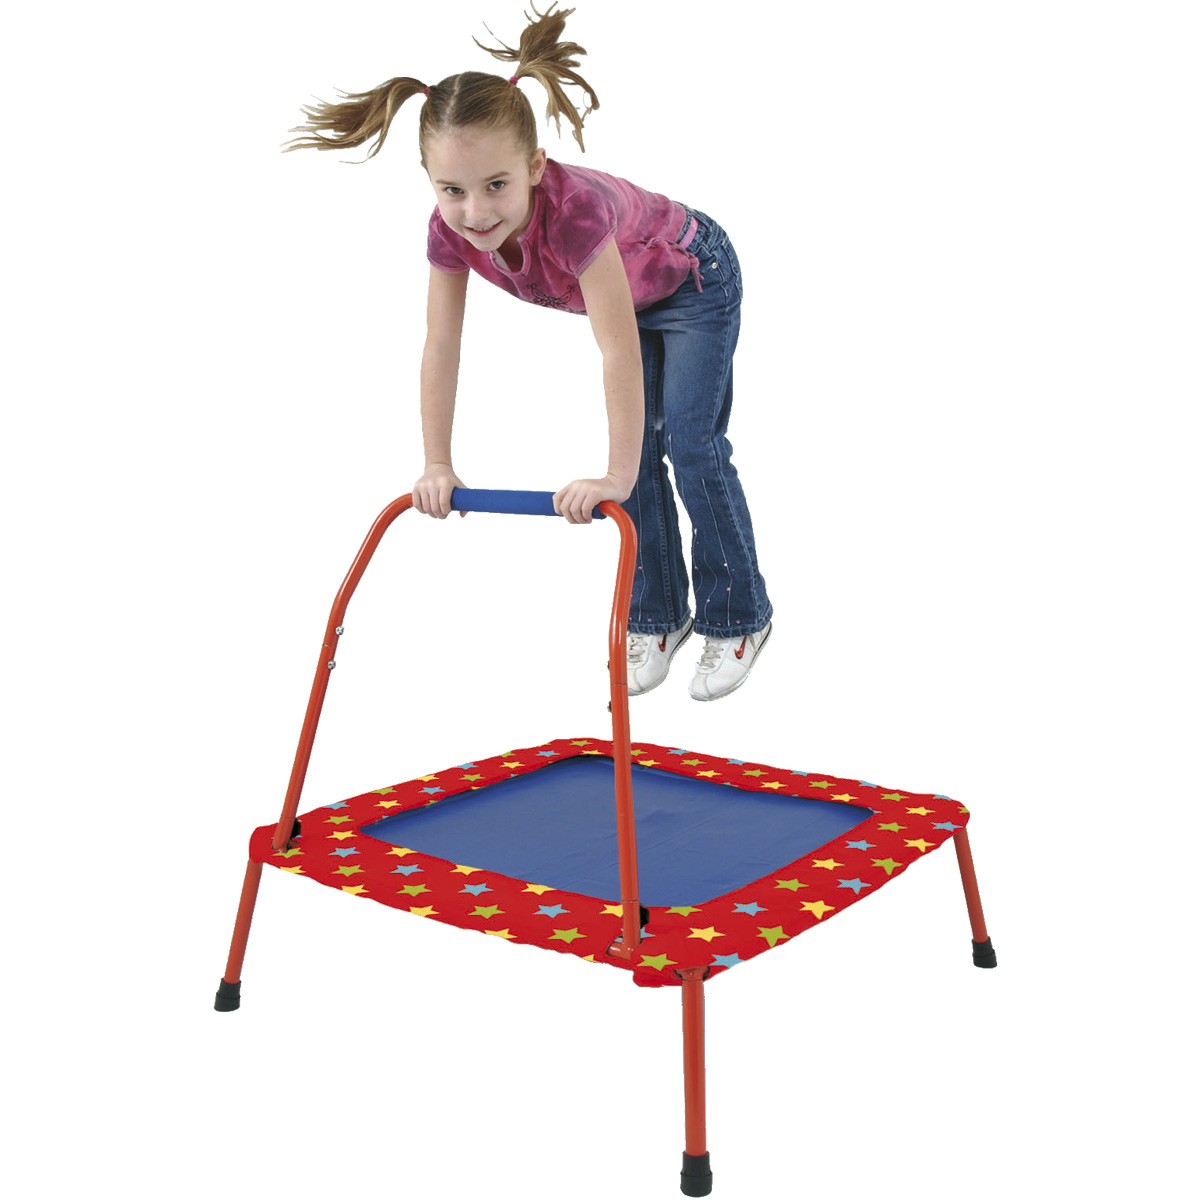 Mini Trampoline Galt Jumping Mulberry Bush